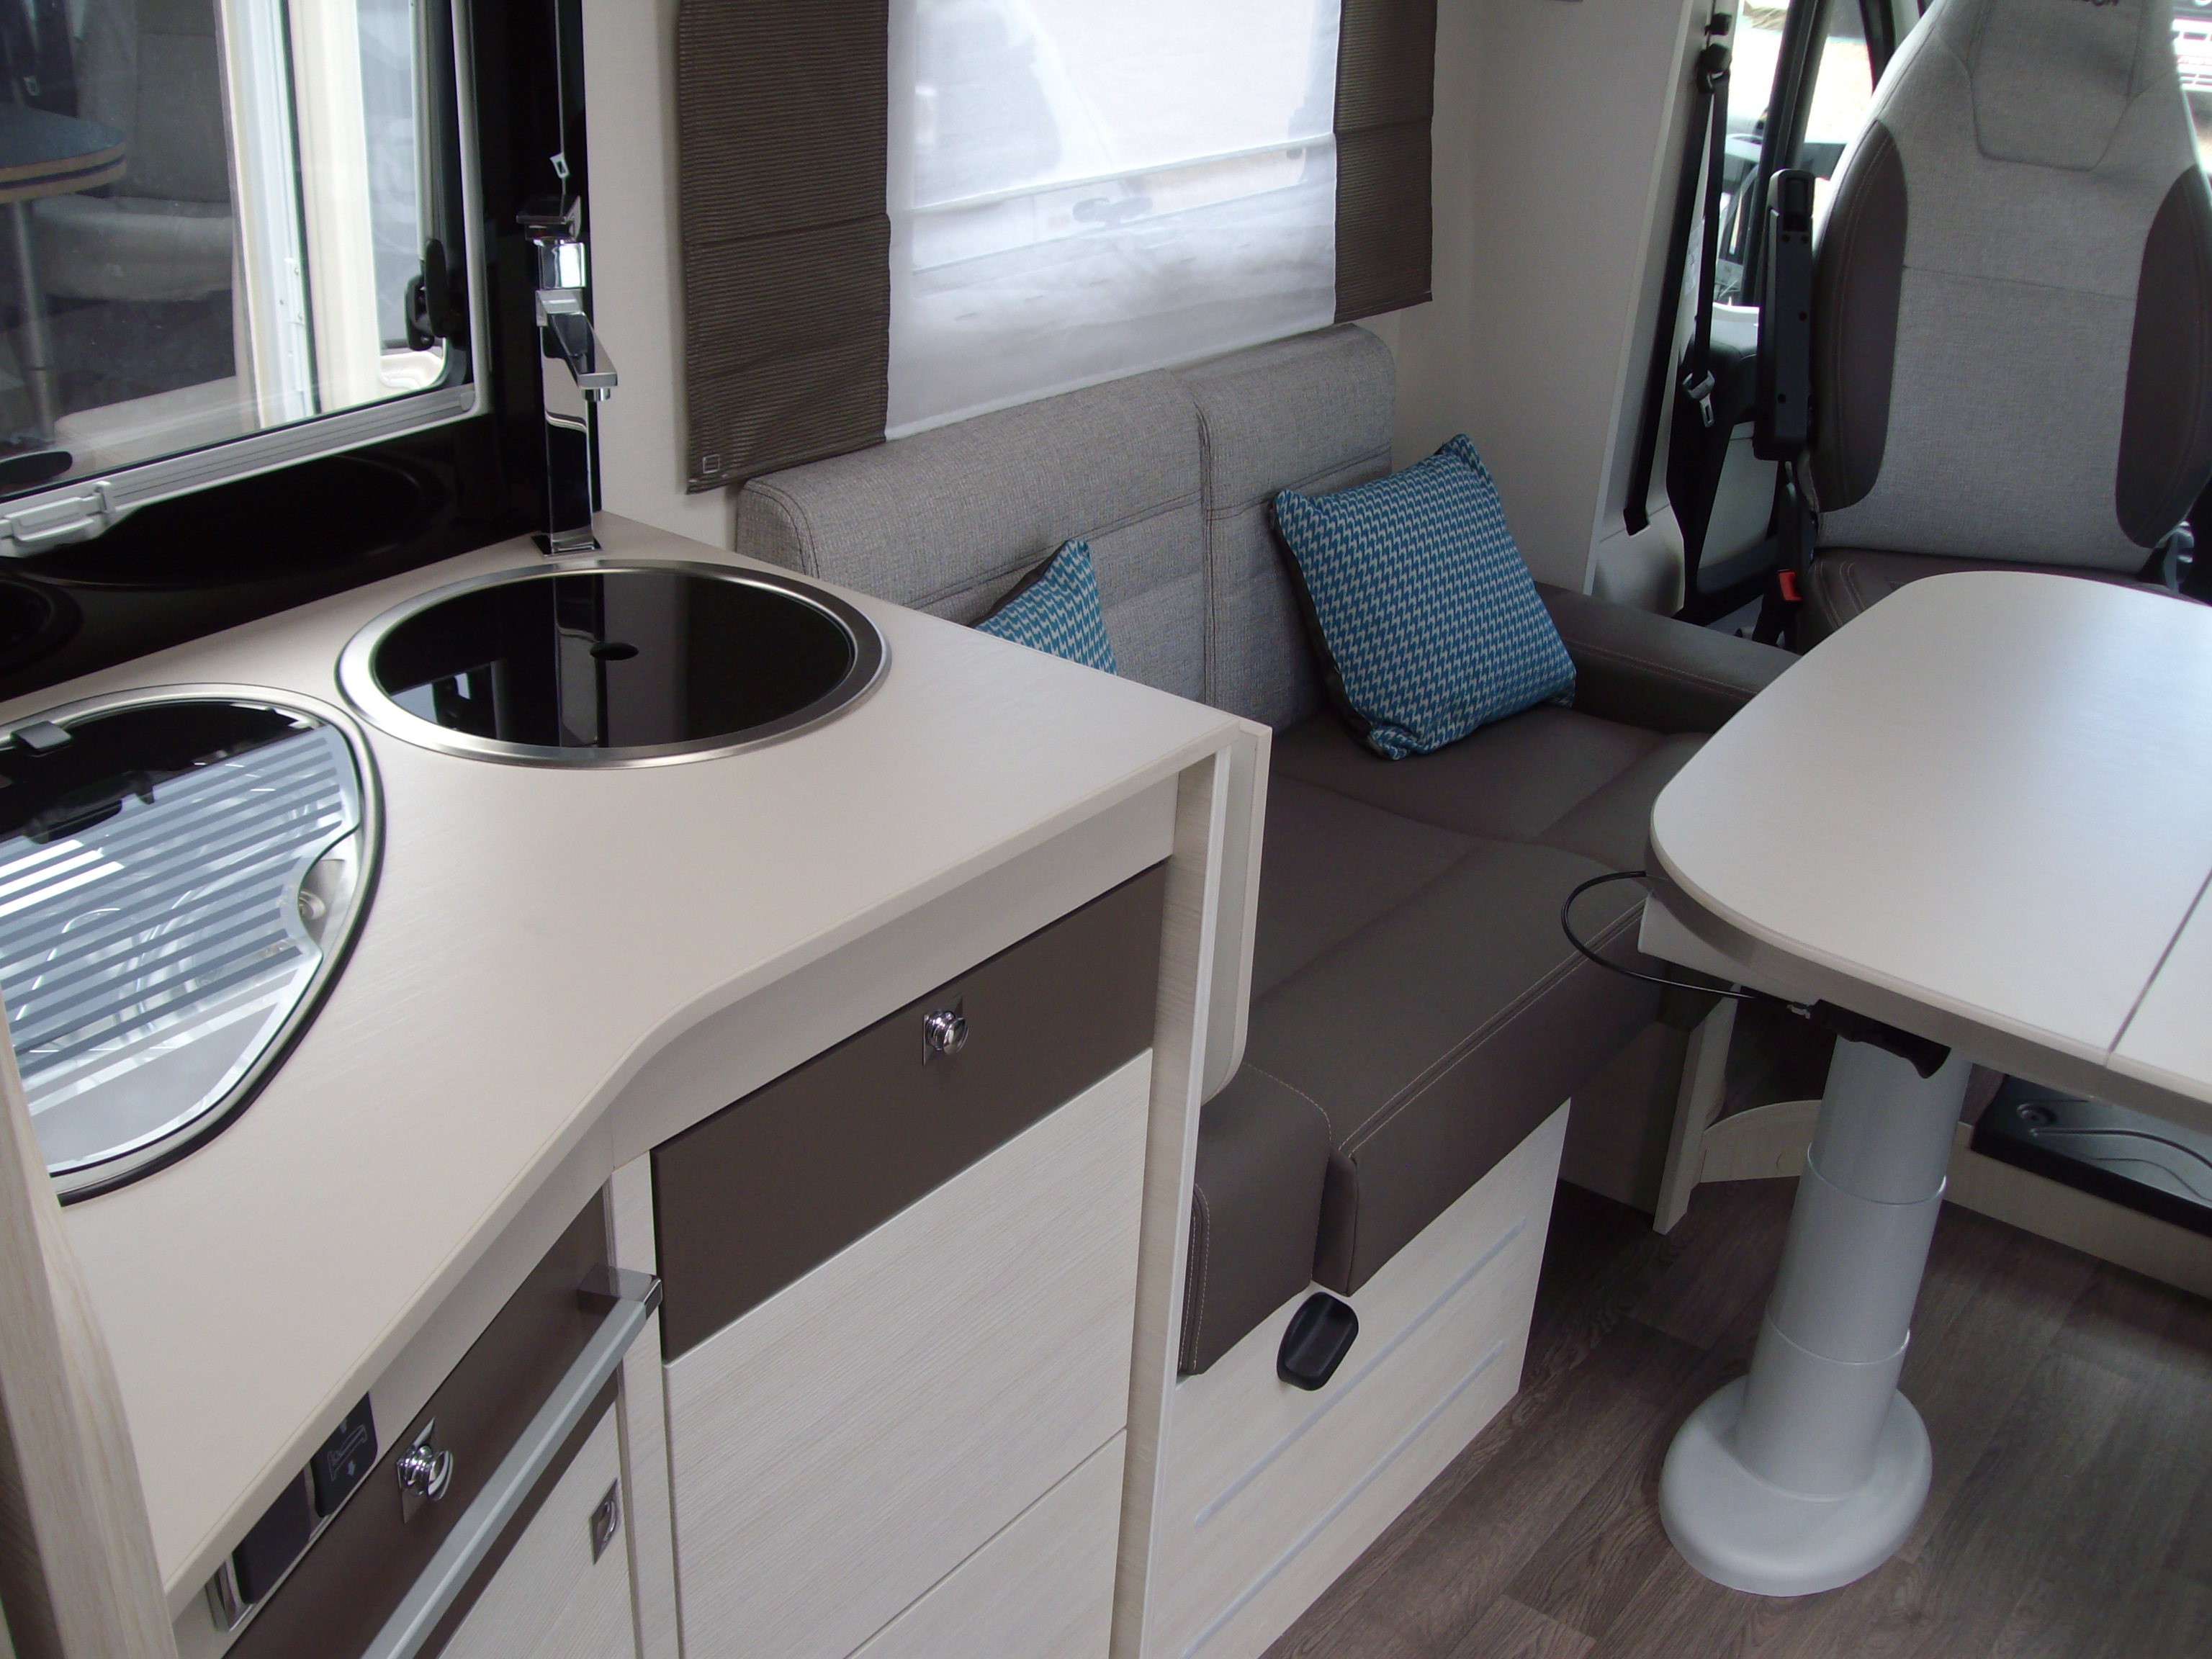 Chausson Welcome 738 Xlb - 4